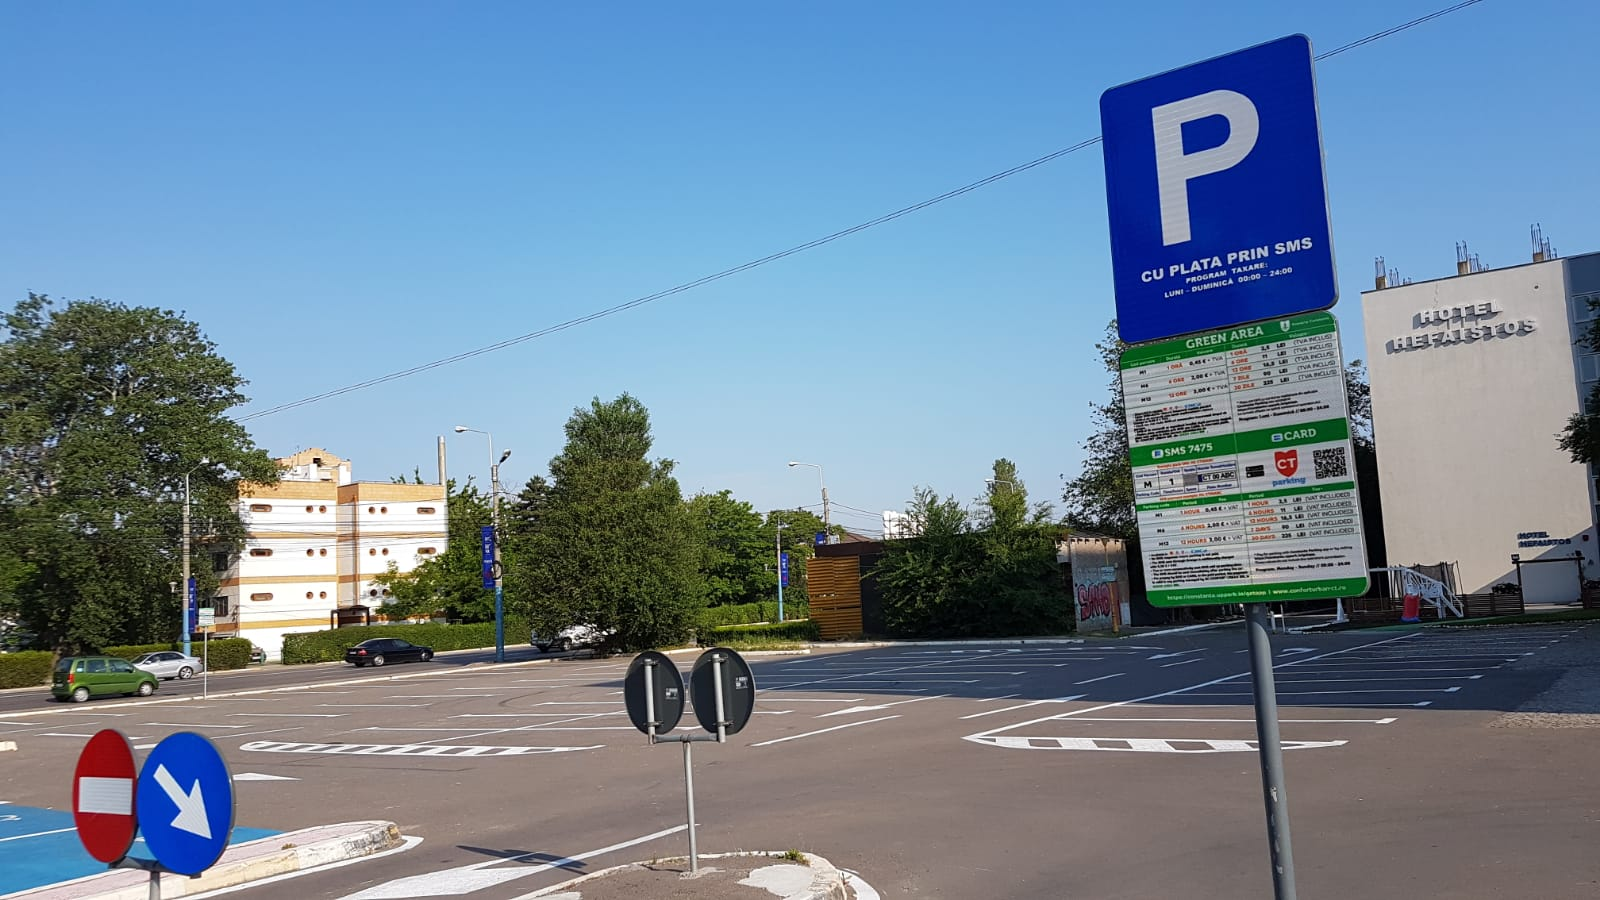 parcare in mamaia